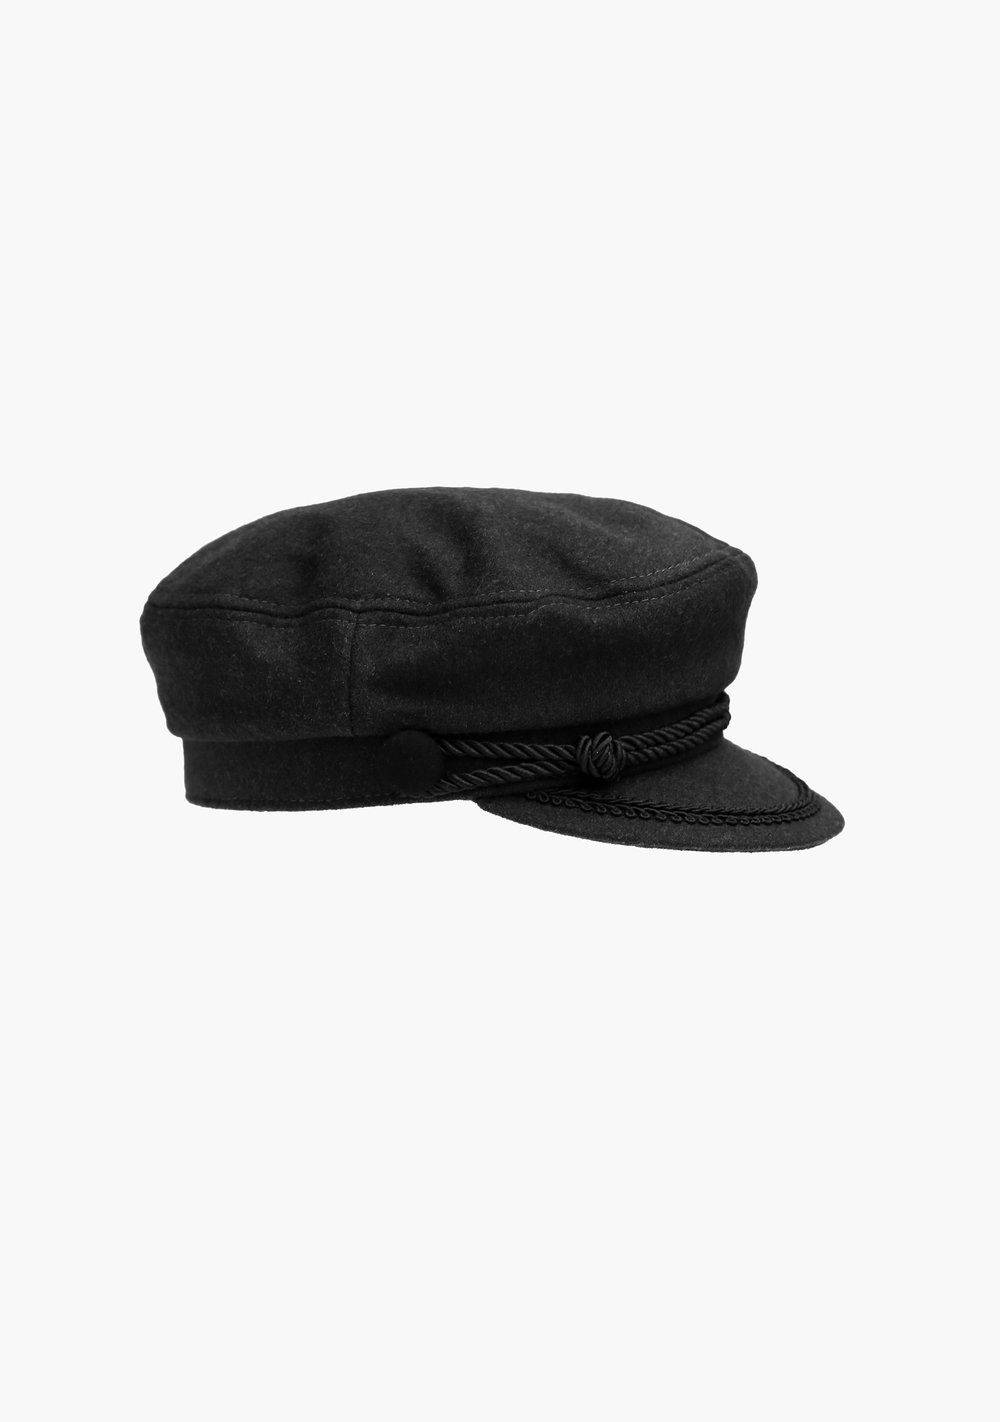 66thelabel_black_cap.jpg